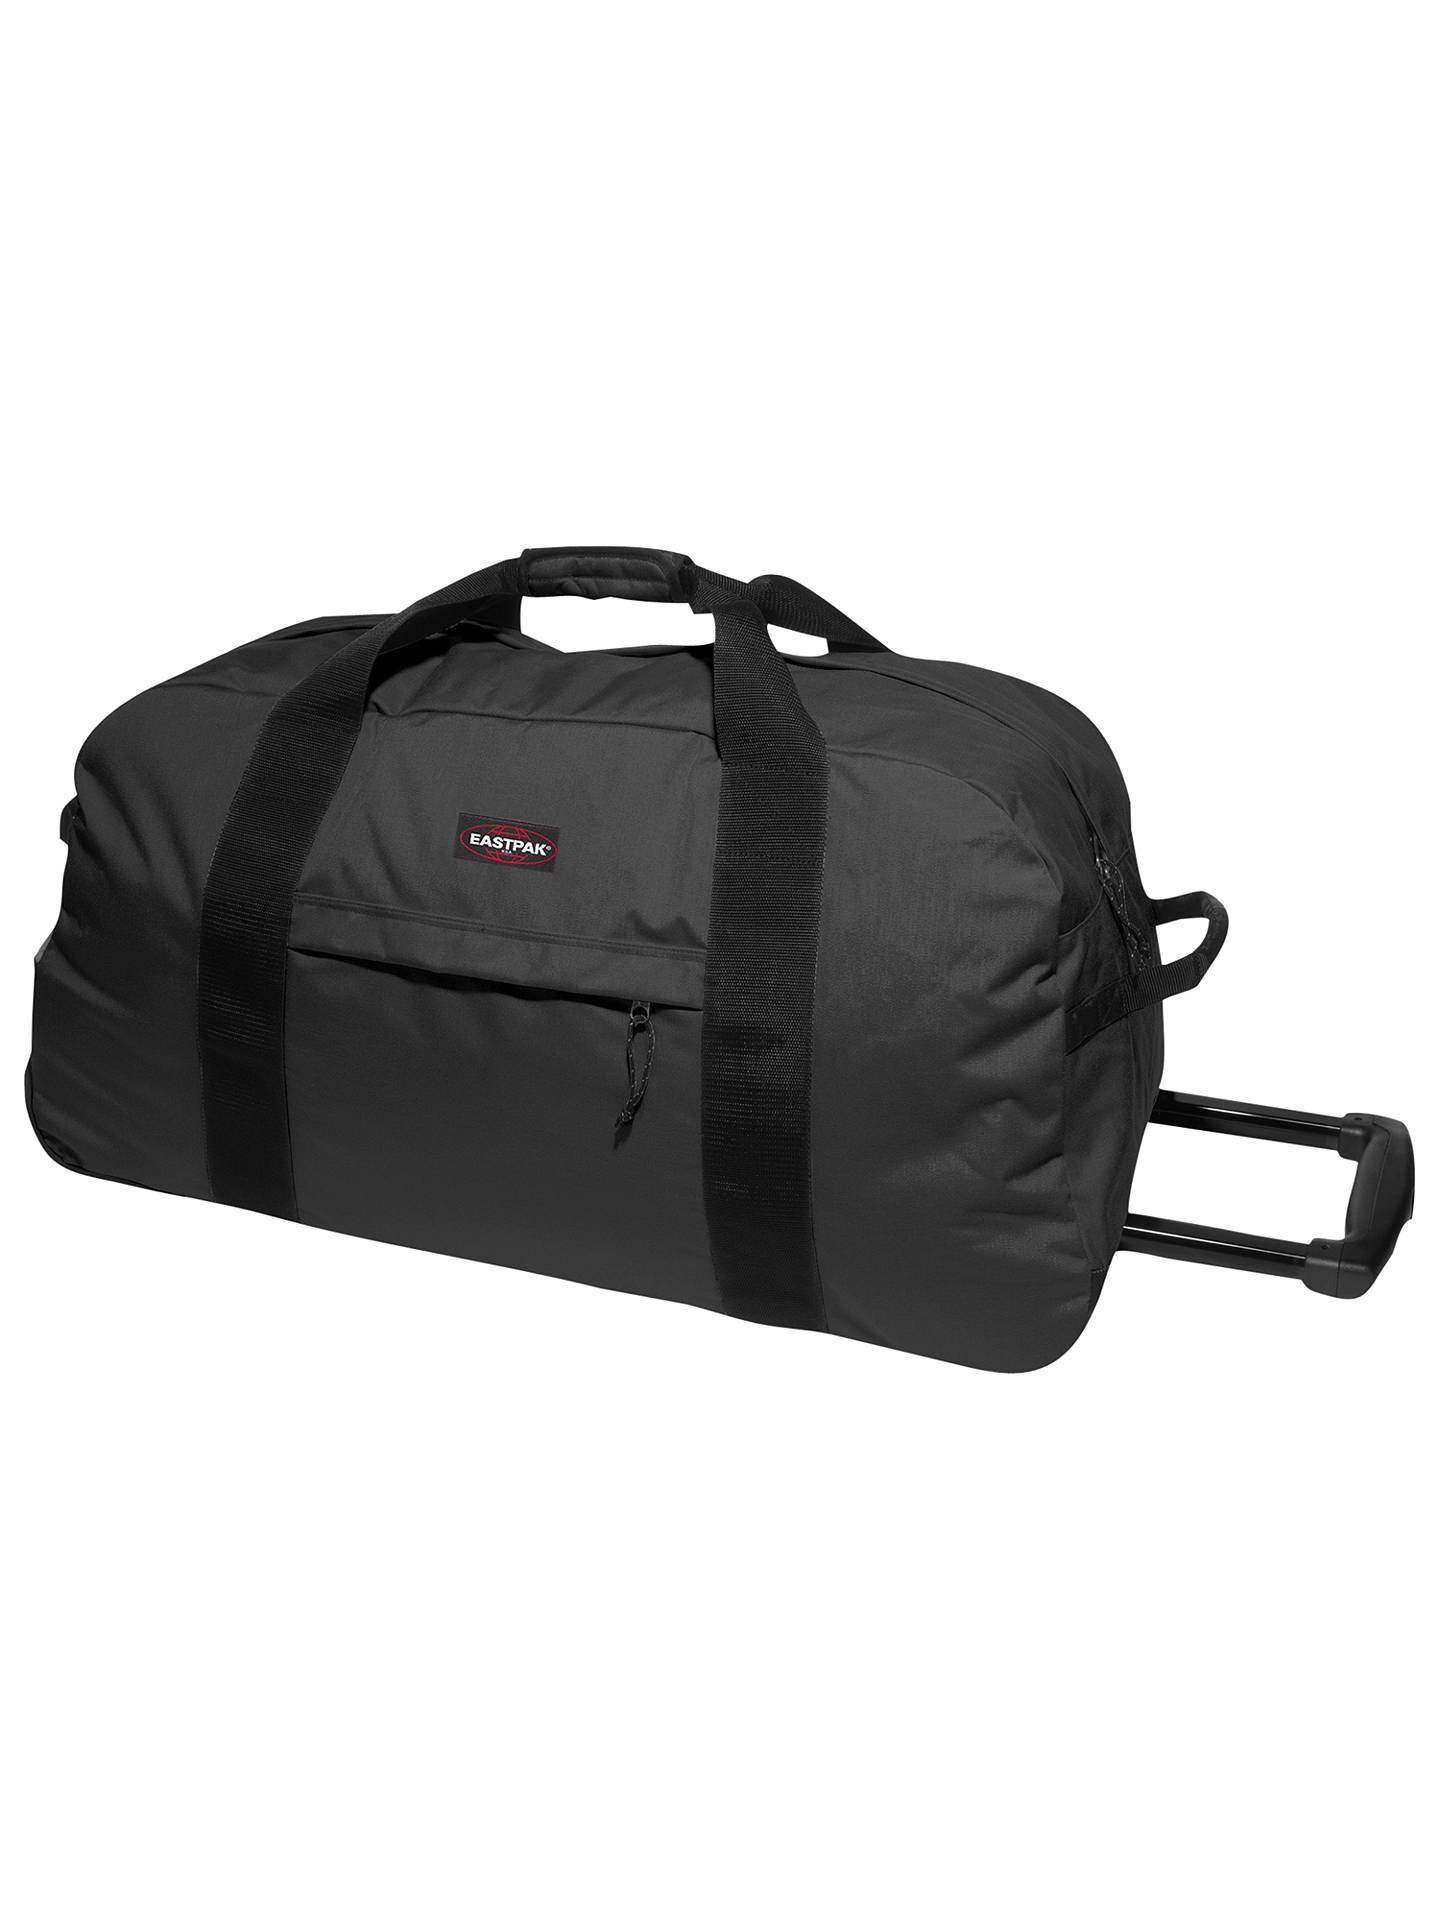 e759cd0c4 Buy Eastpak Container 85 Wheeled Duffle Bag, Black Online at johnlewis.com  ...